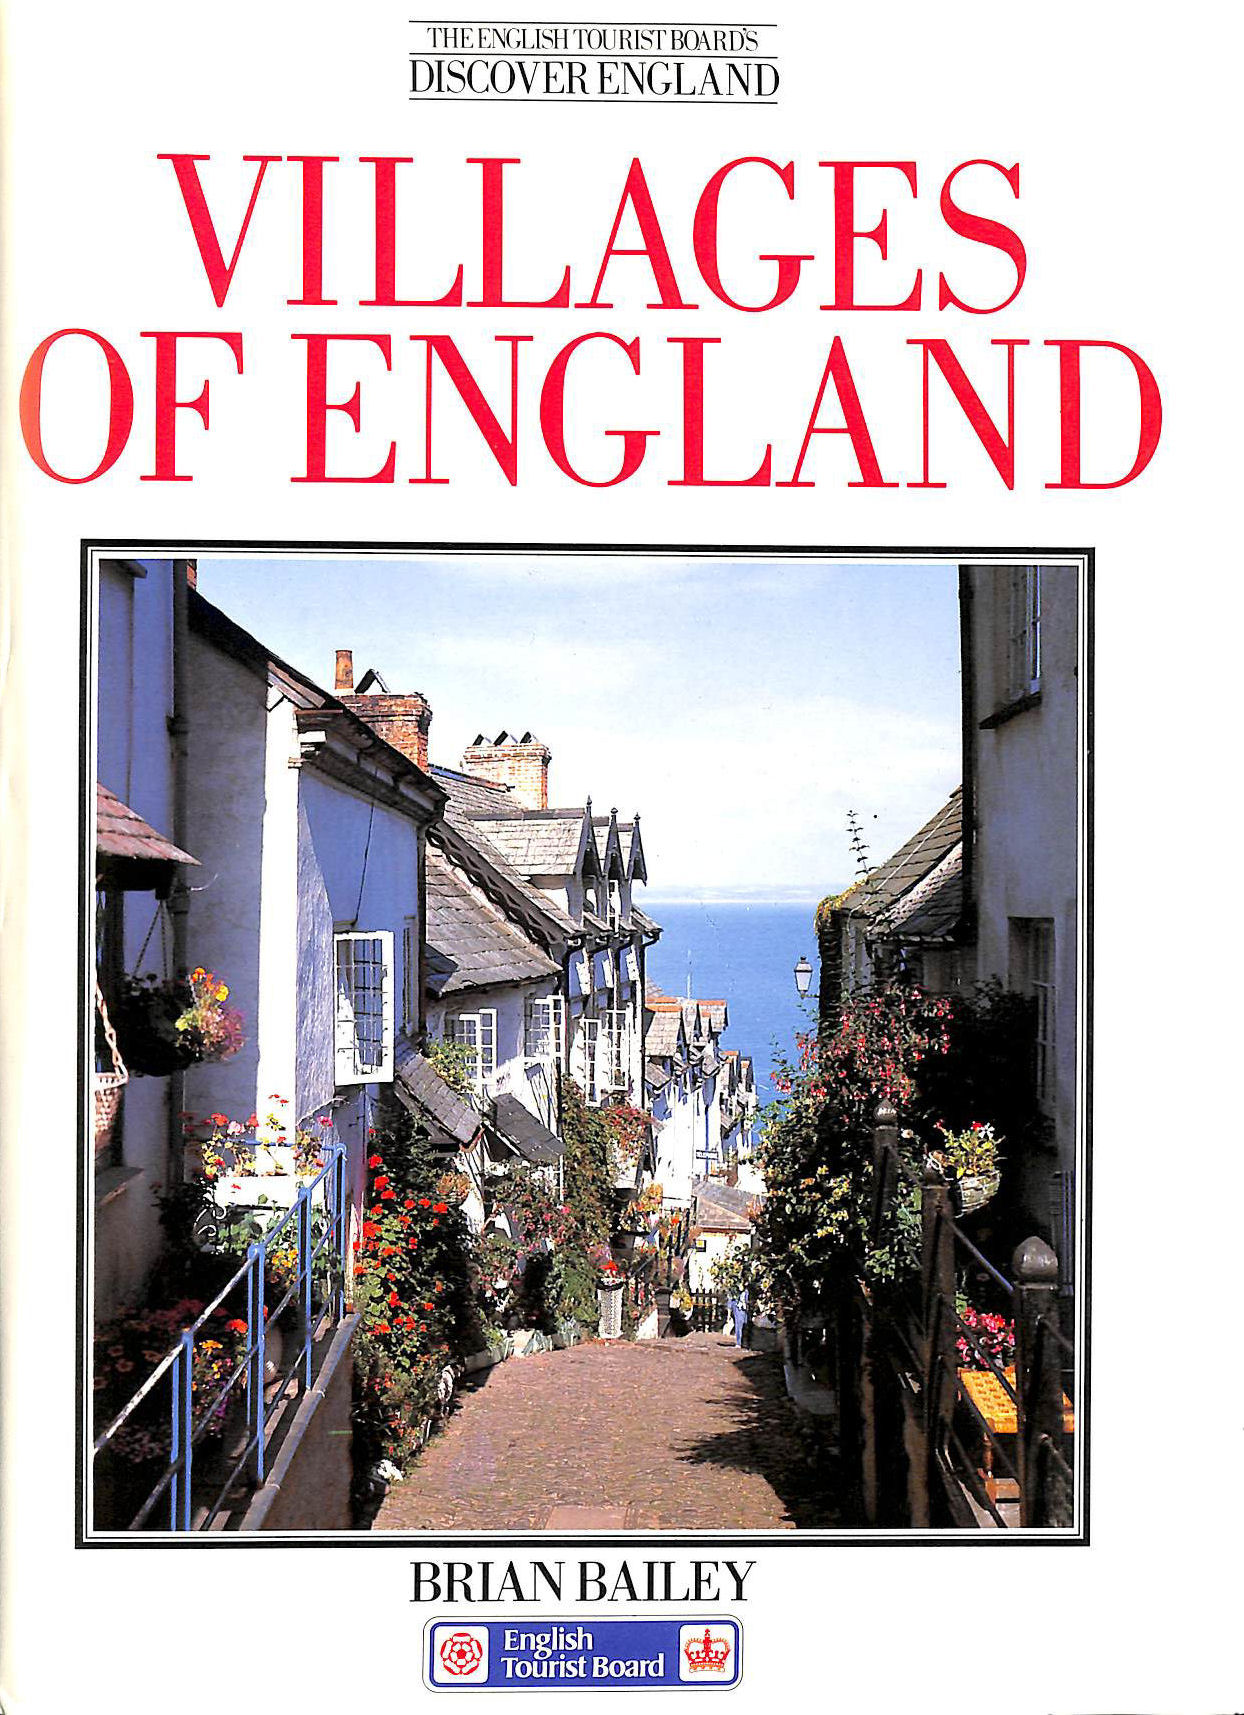 Villages of England, Brian Bailey